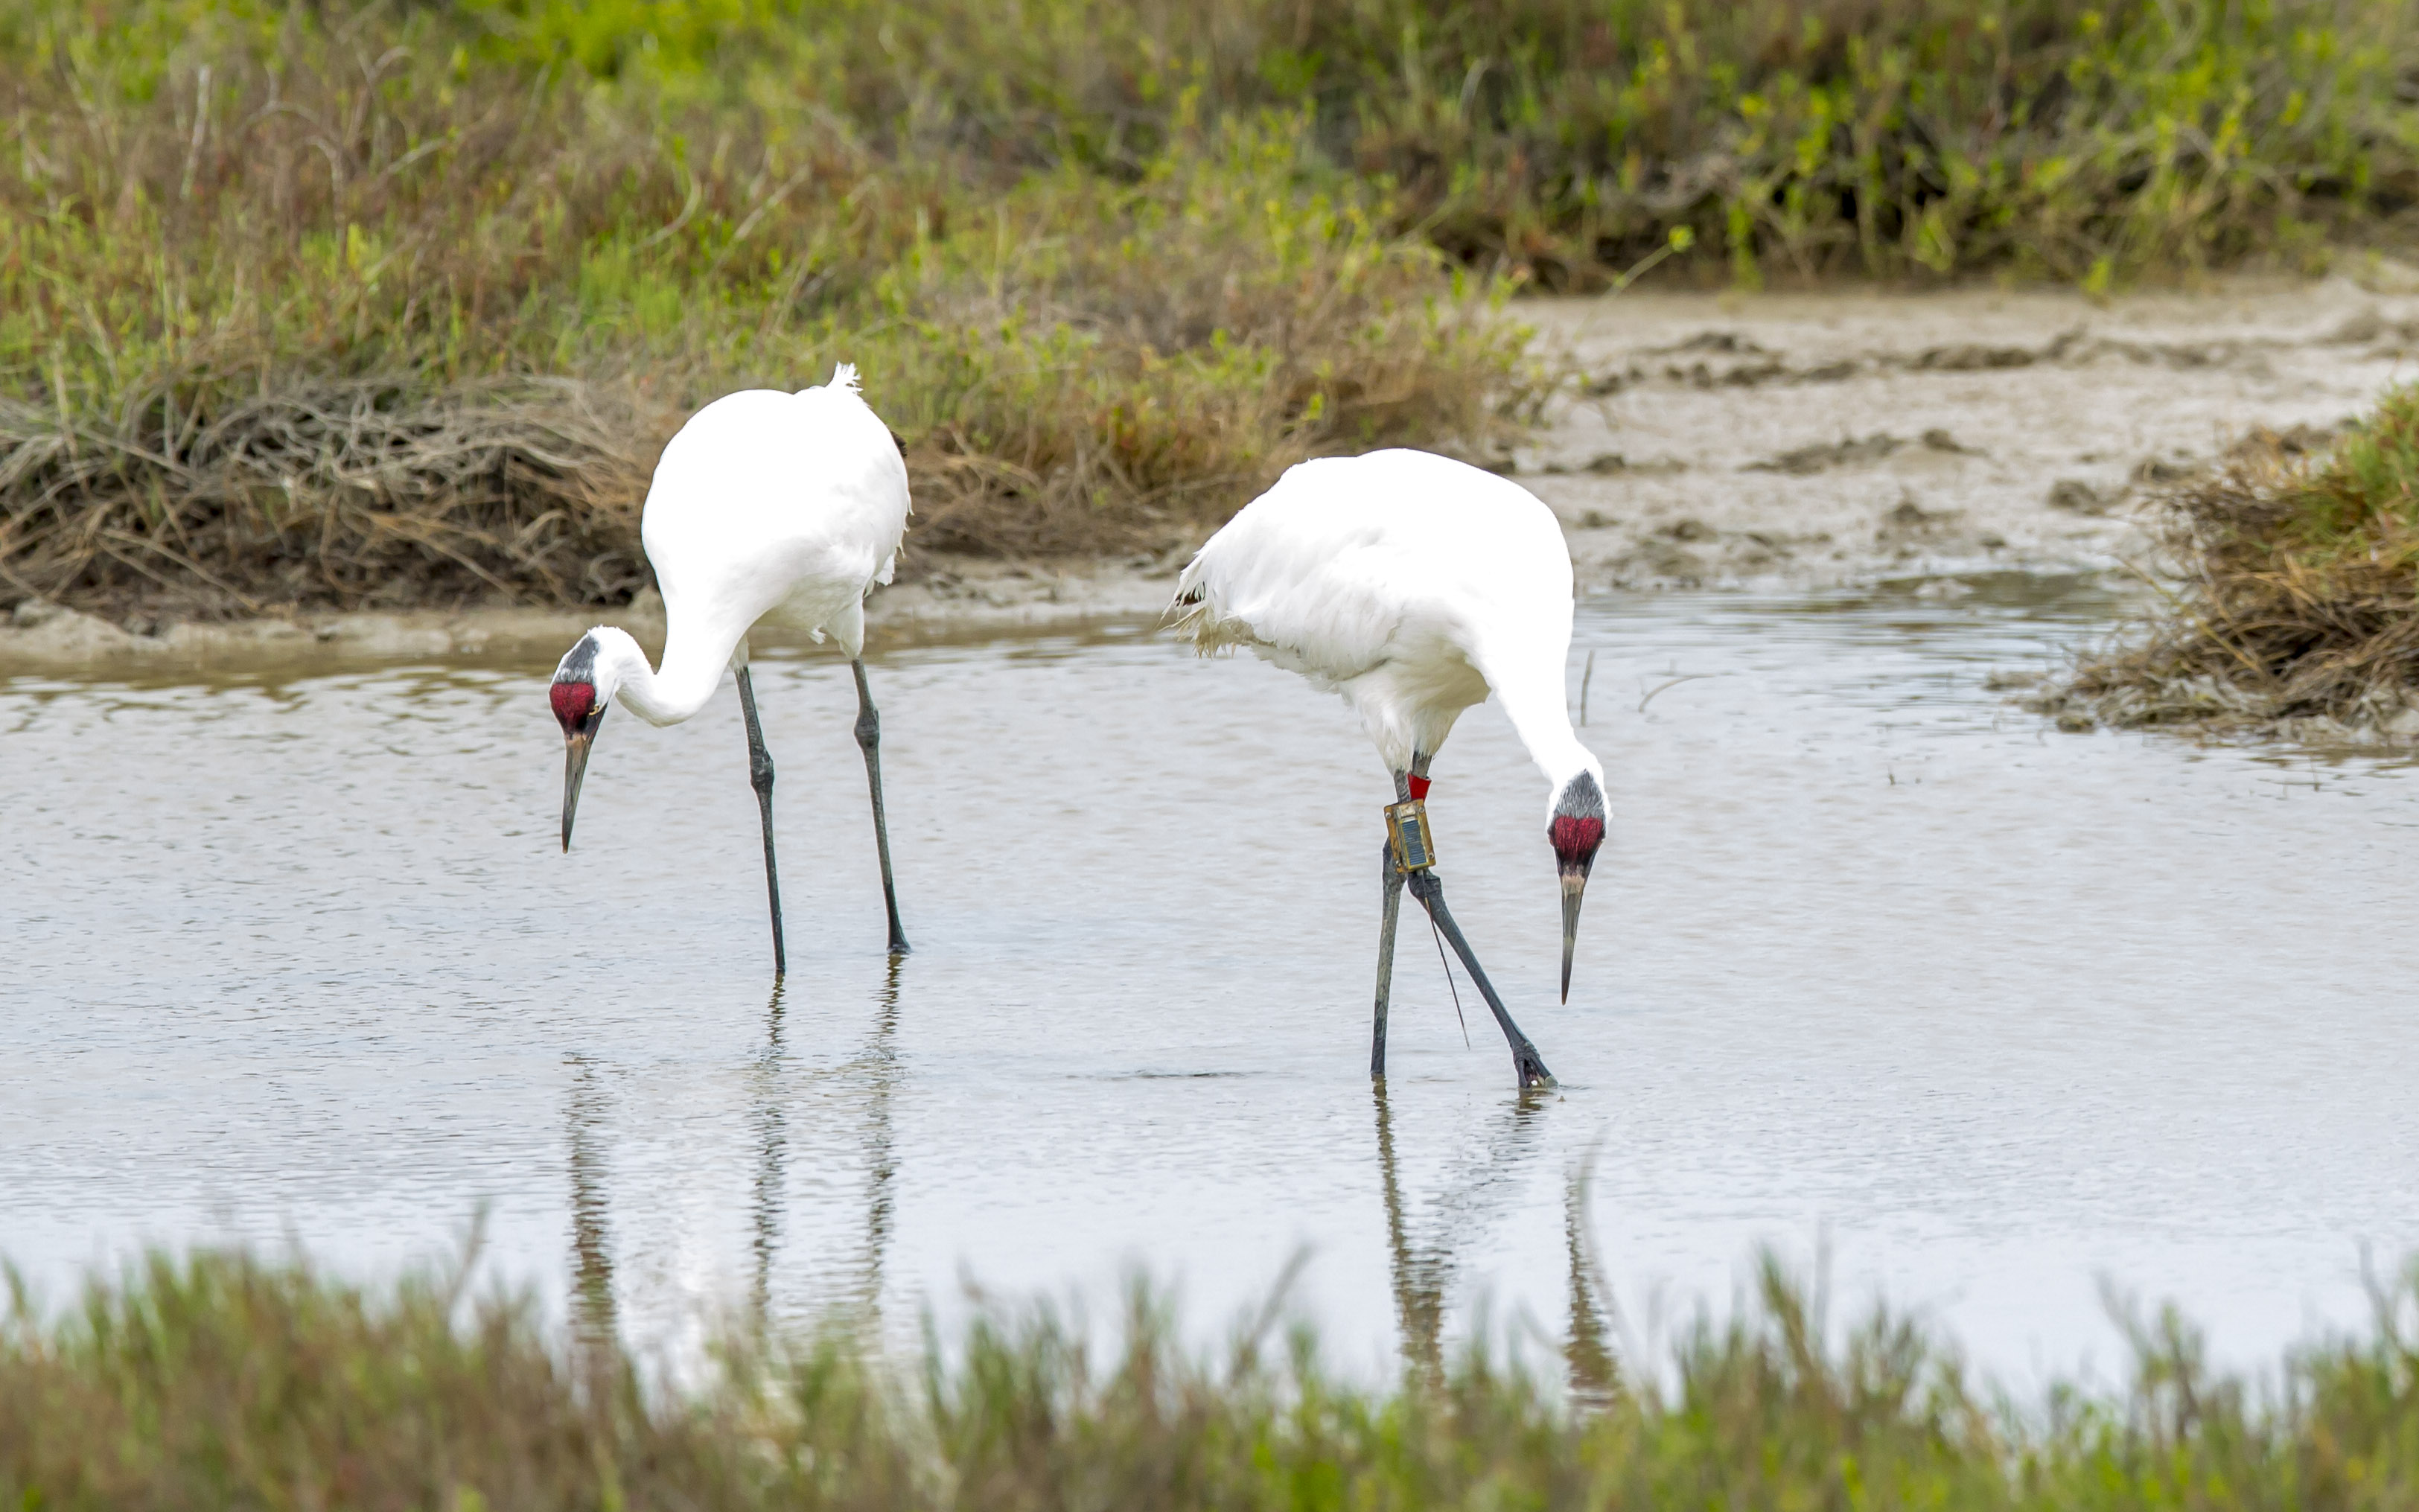 Whooping cranes foraging in Texas